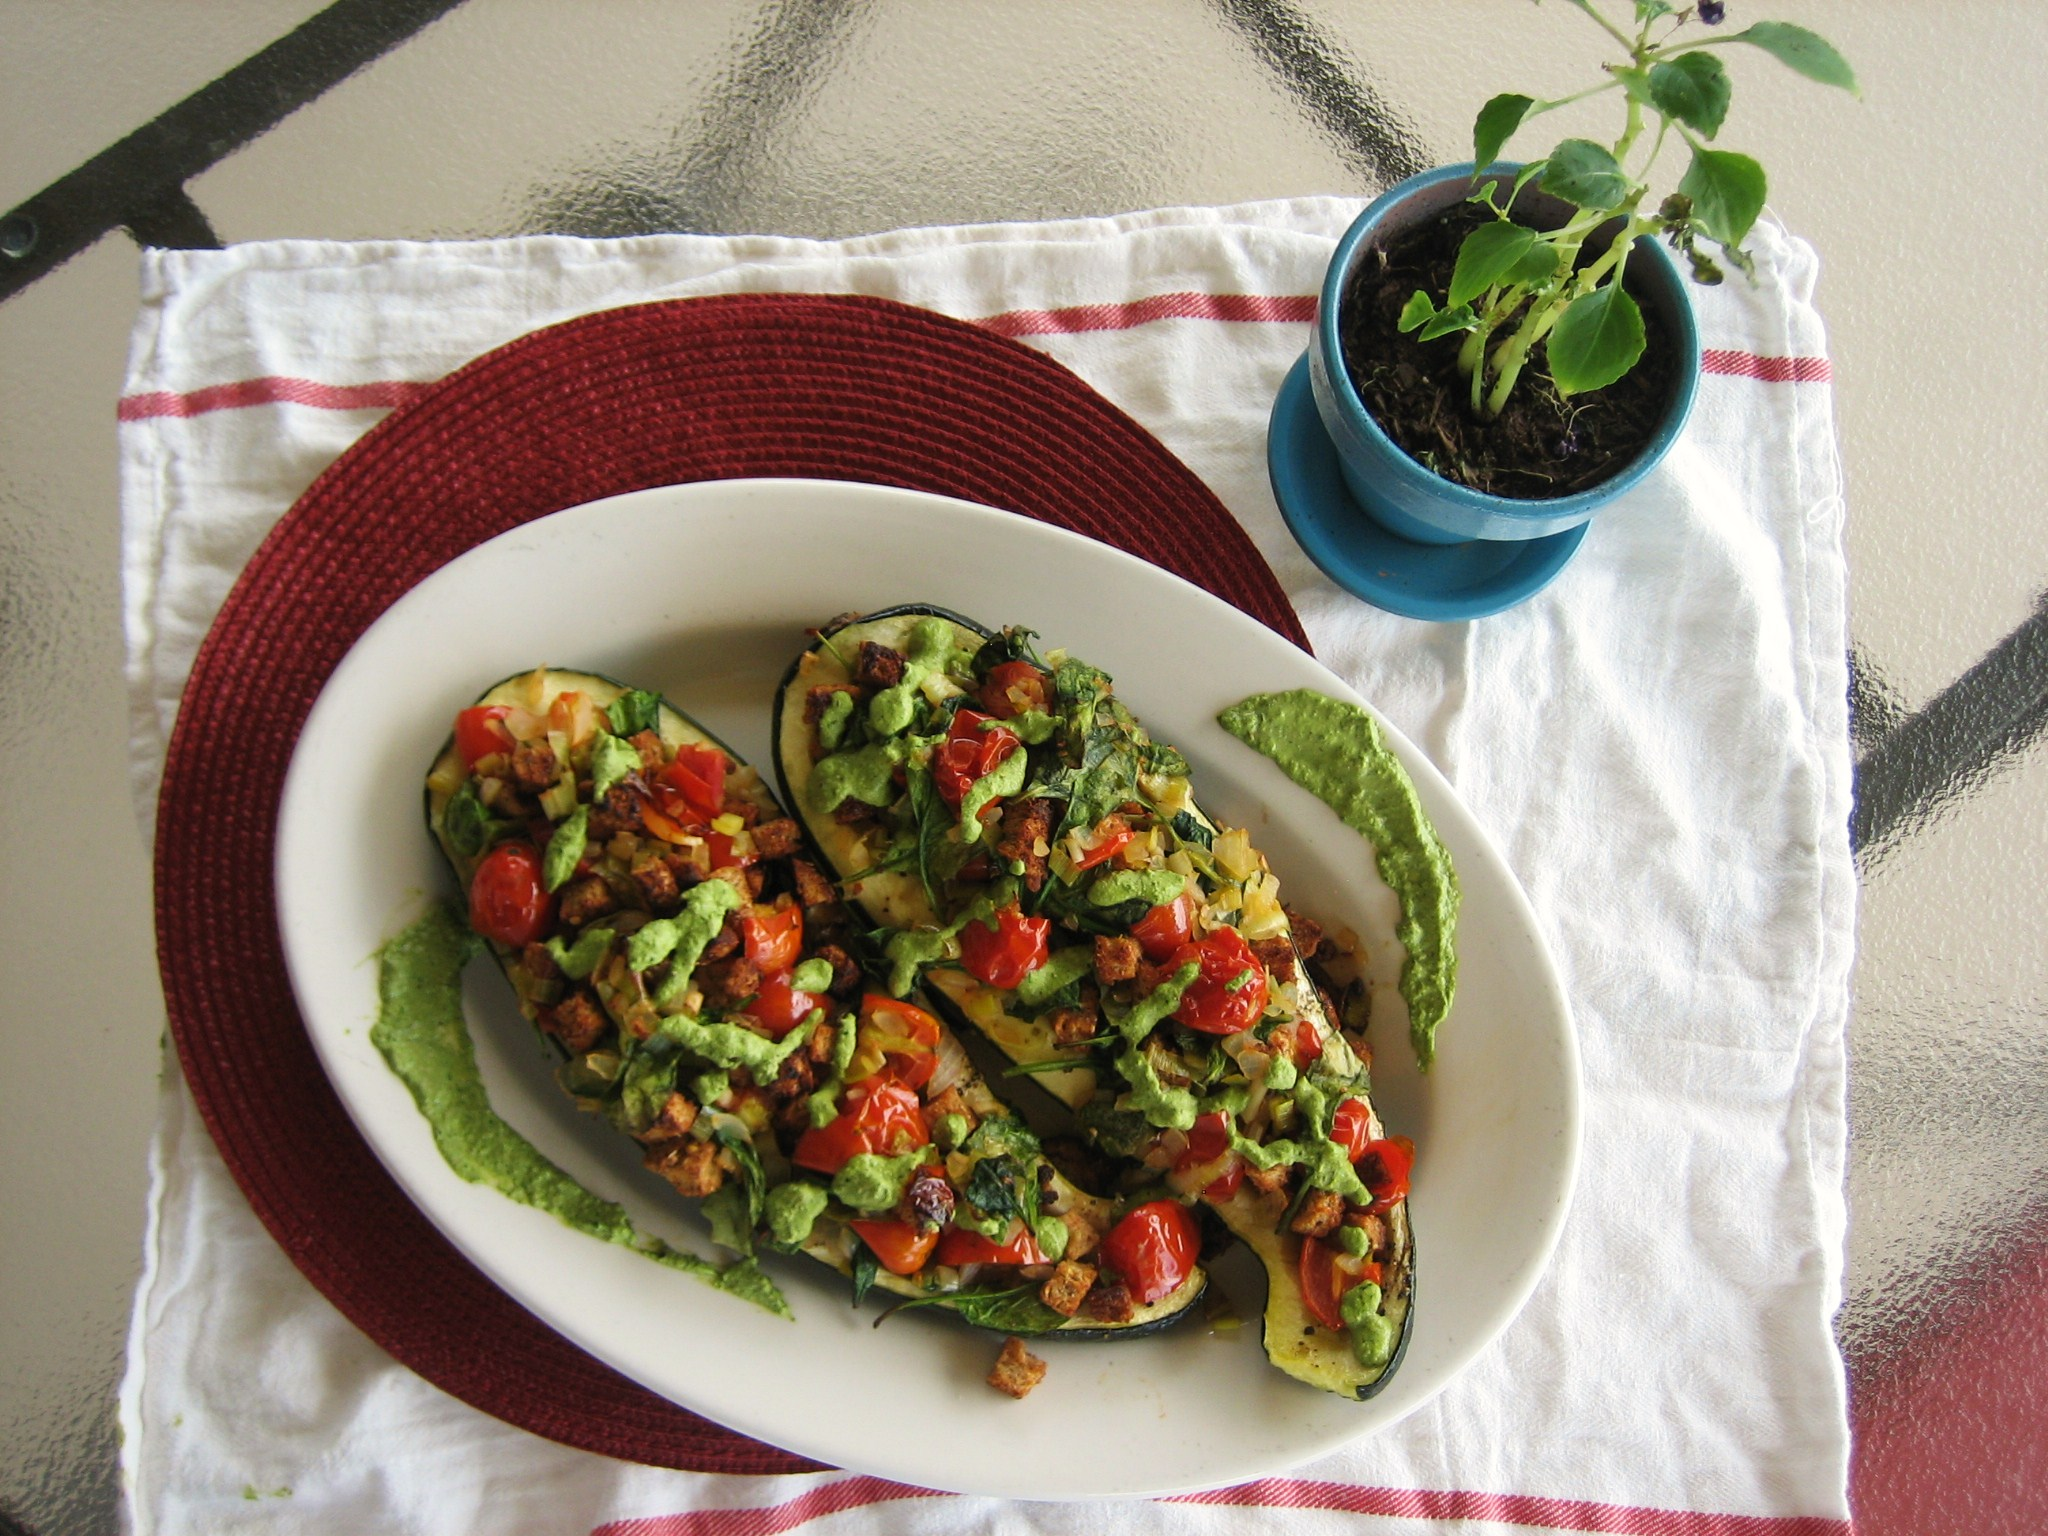 Meatless Stuffed Zucchini Recipes